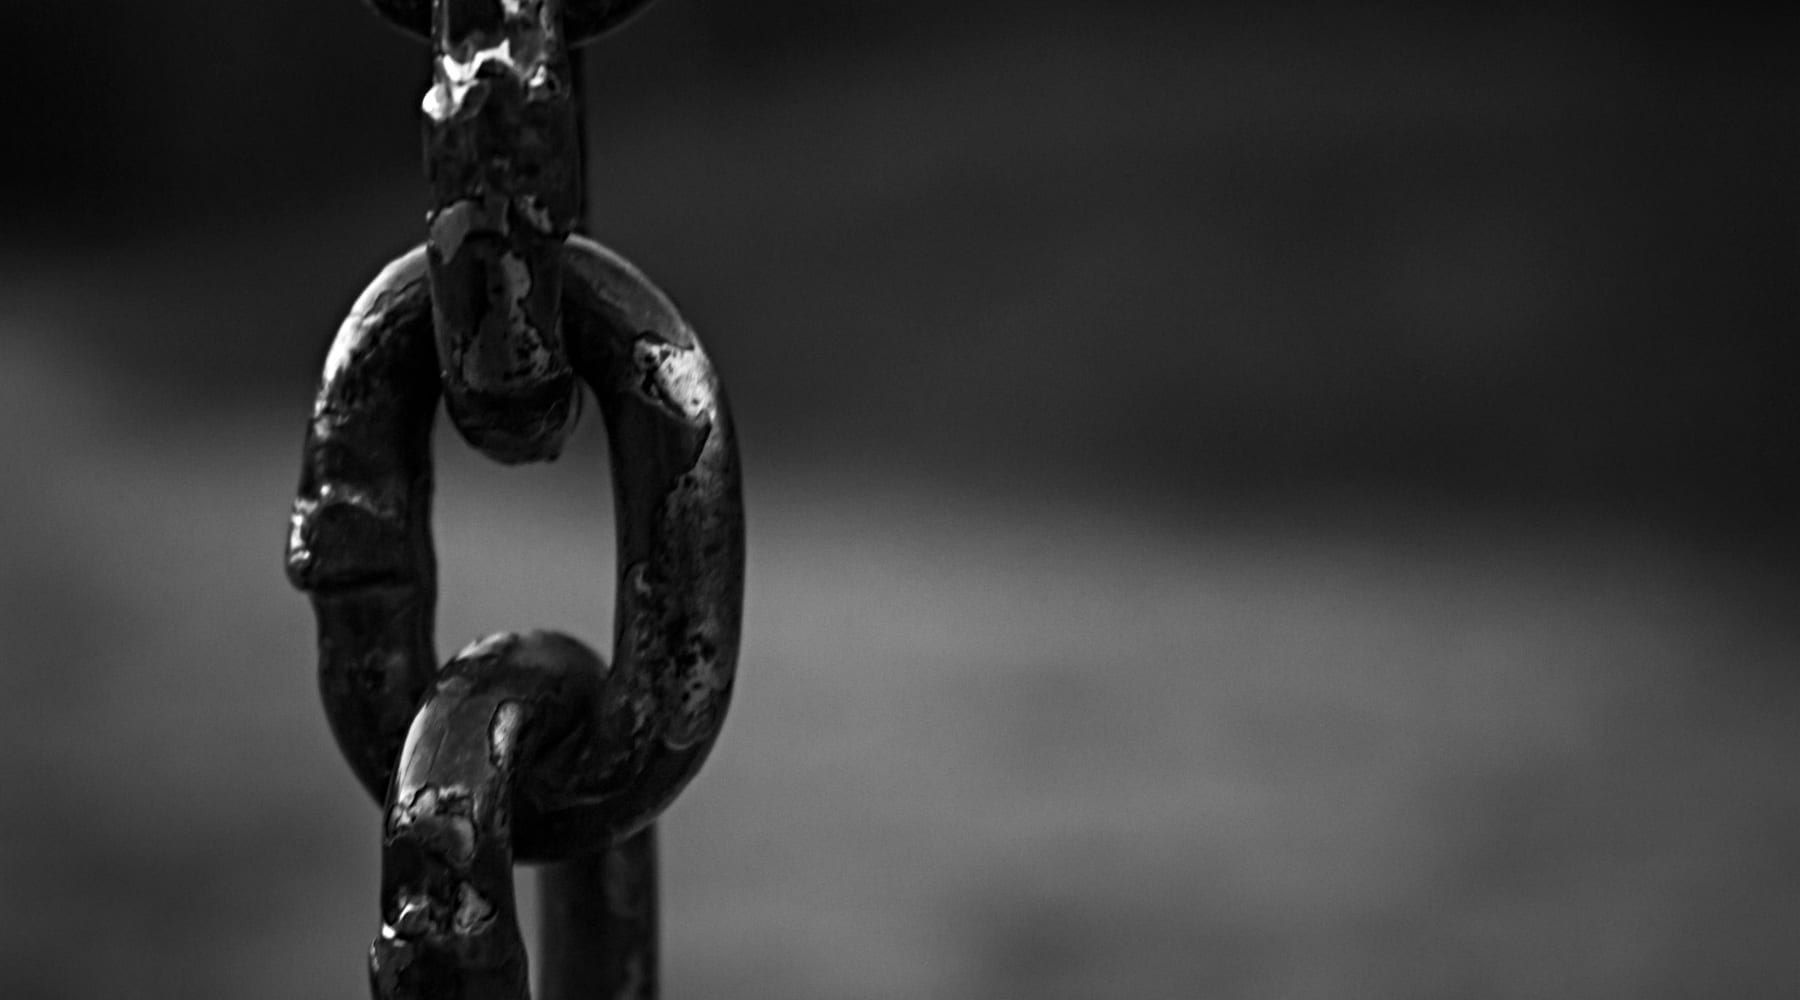 A close up of a chain link